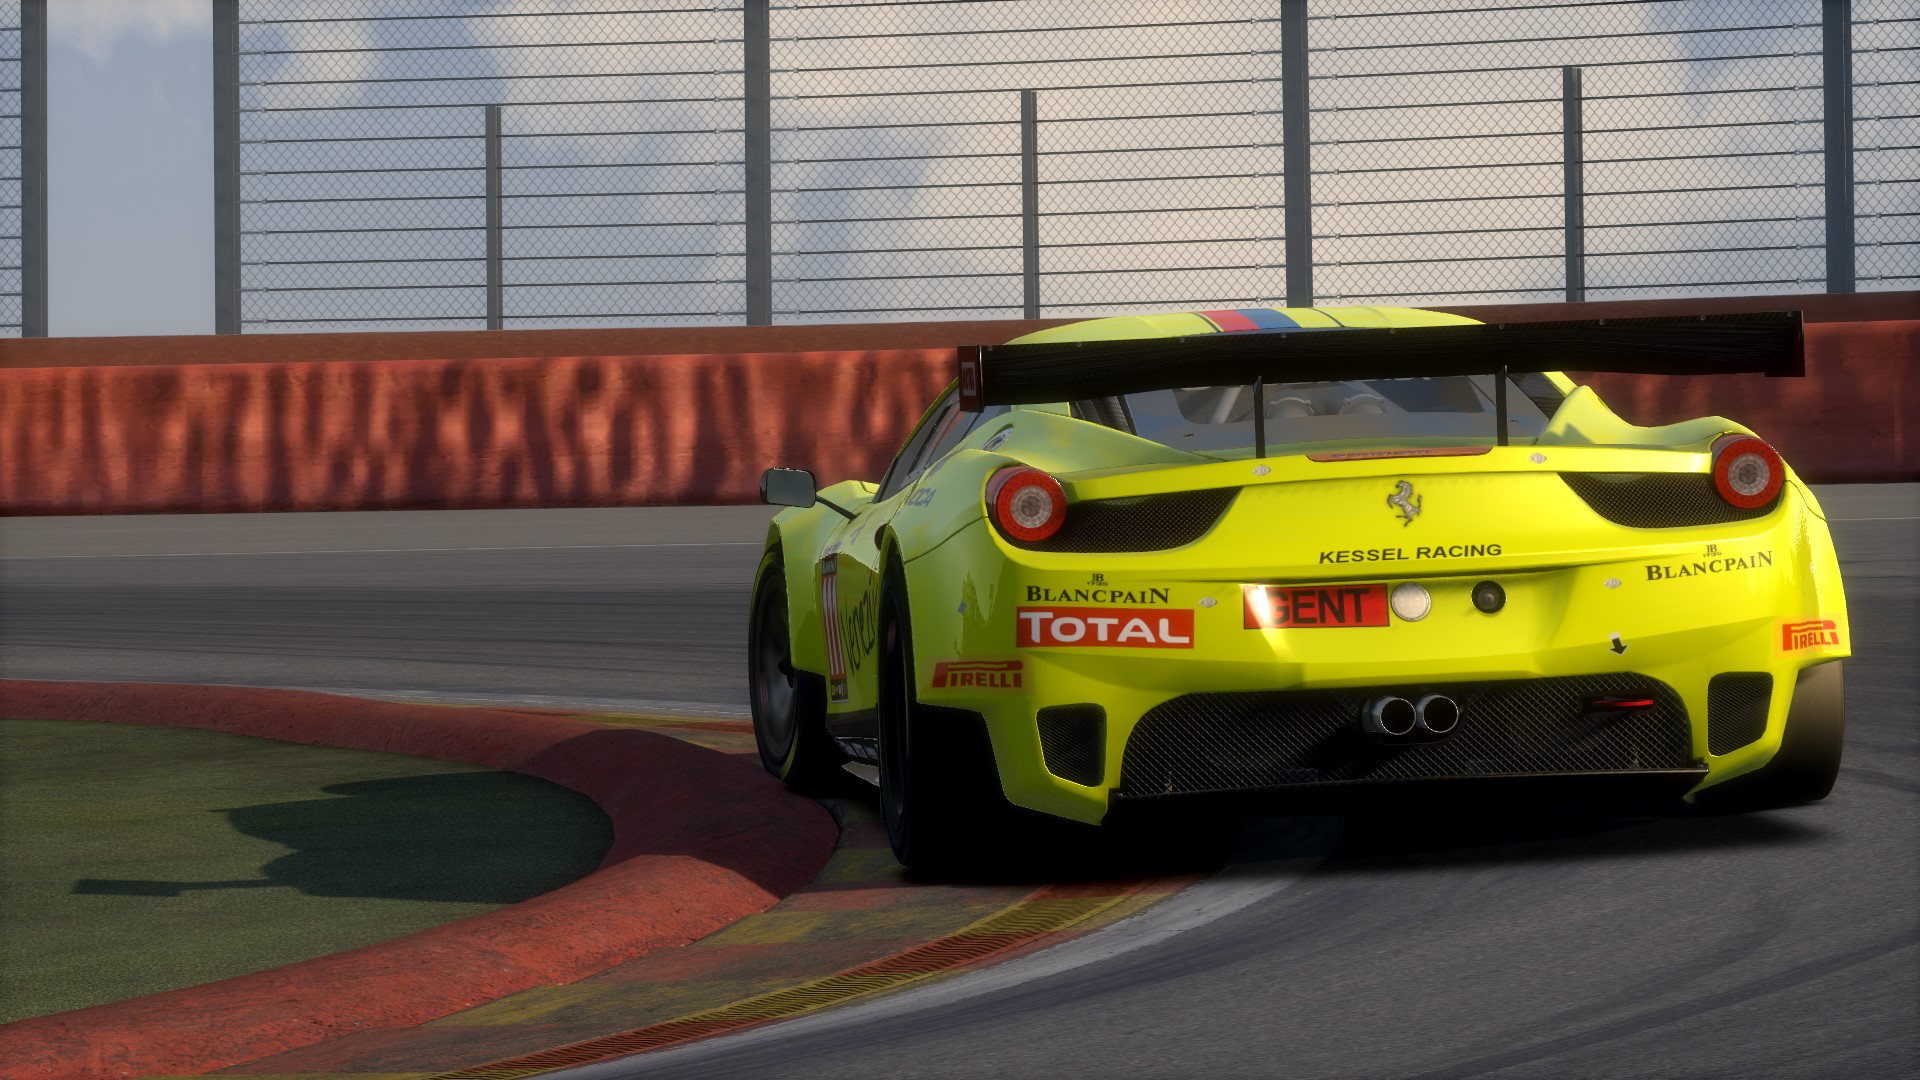 Screenshot_ferrari_458_gt2_spa_30-1-2015-3-20-16.jpg